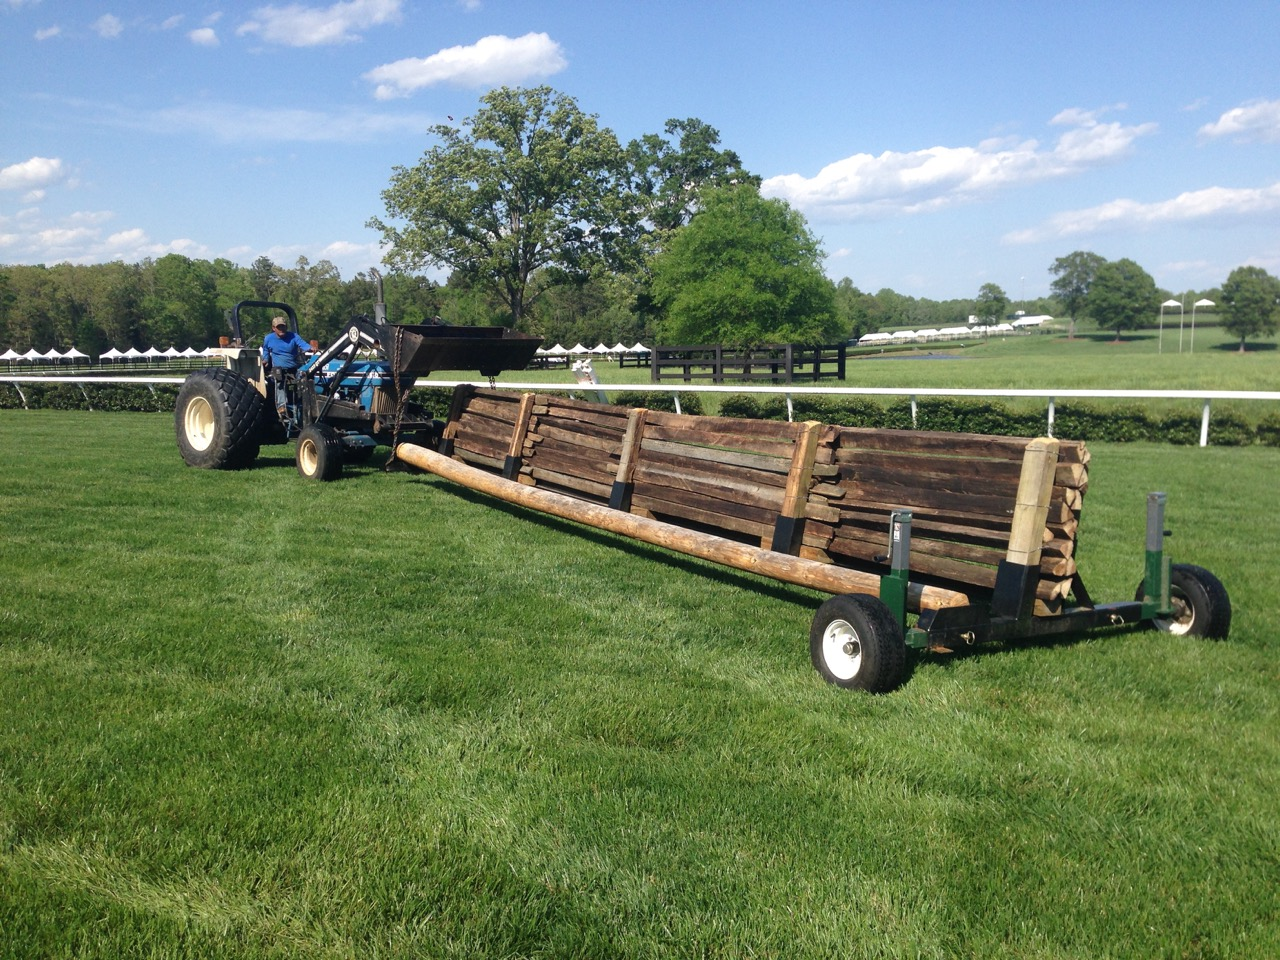 Timber roll-on-roll-off